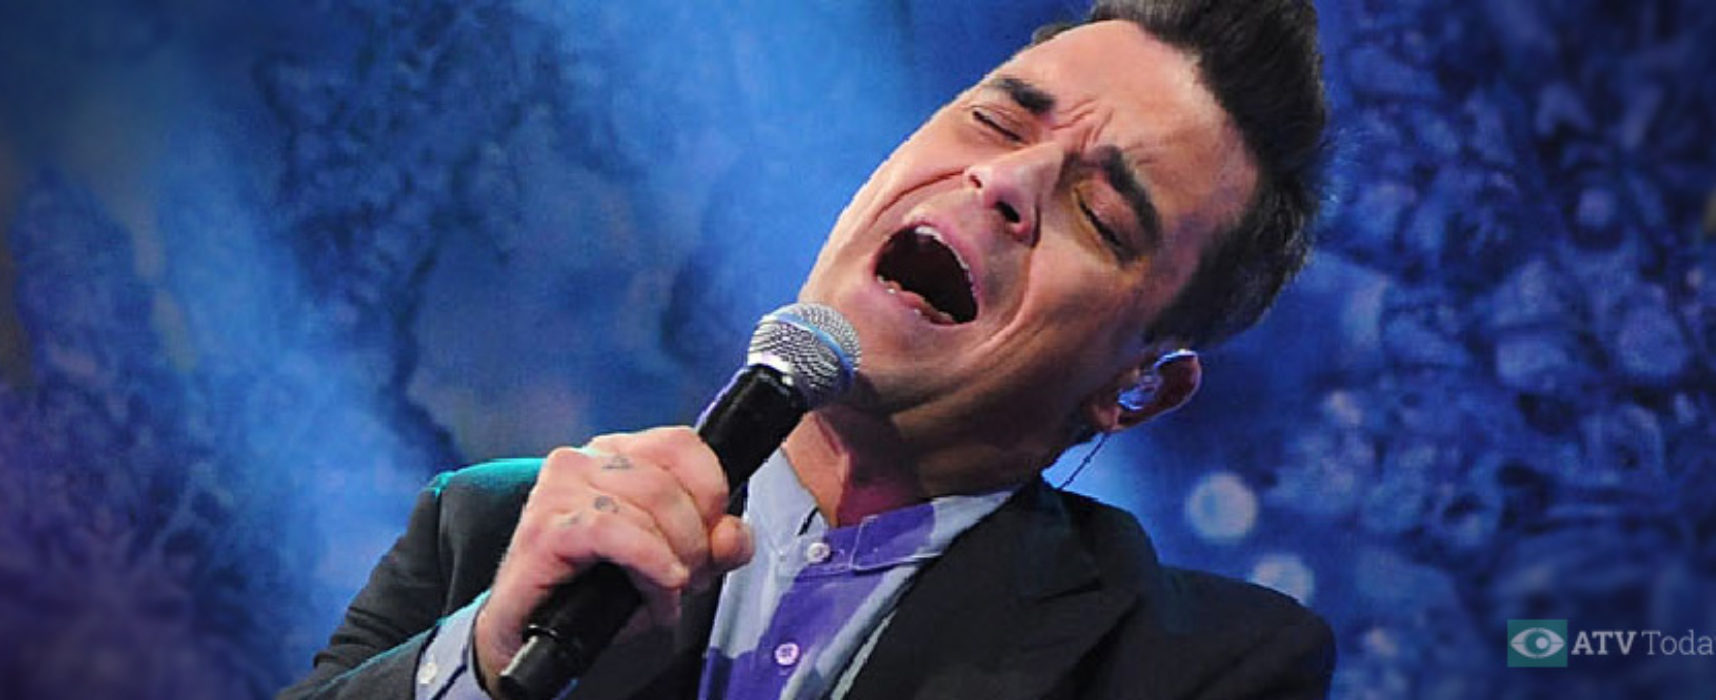 Robbie Williams to front music special for ITV